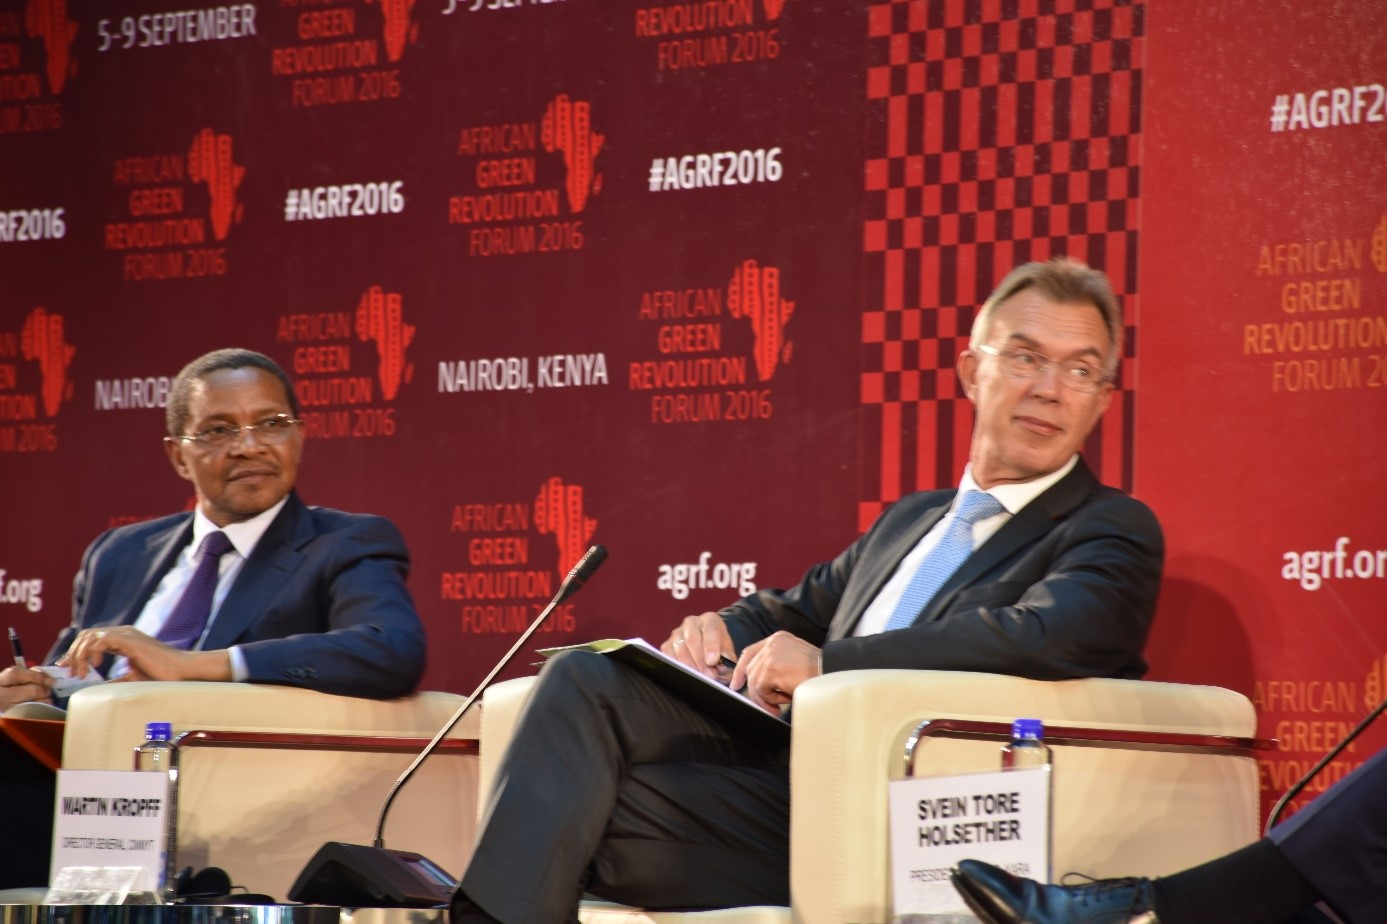 Martin Kropff taking part in the 'big debate' session at AGRF. Photo: B. Wawa/CIMMYT